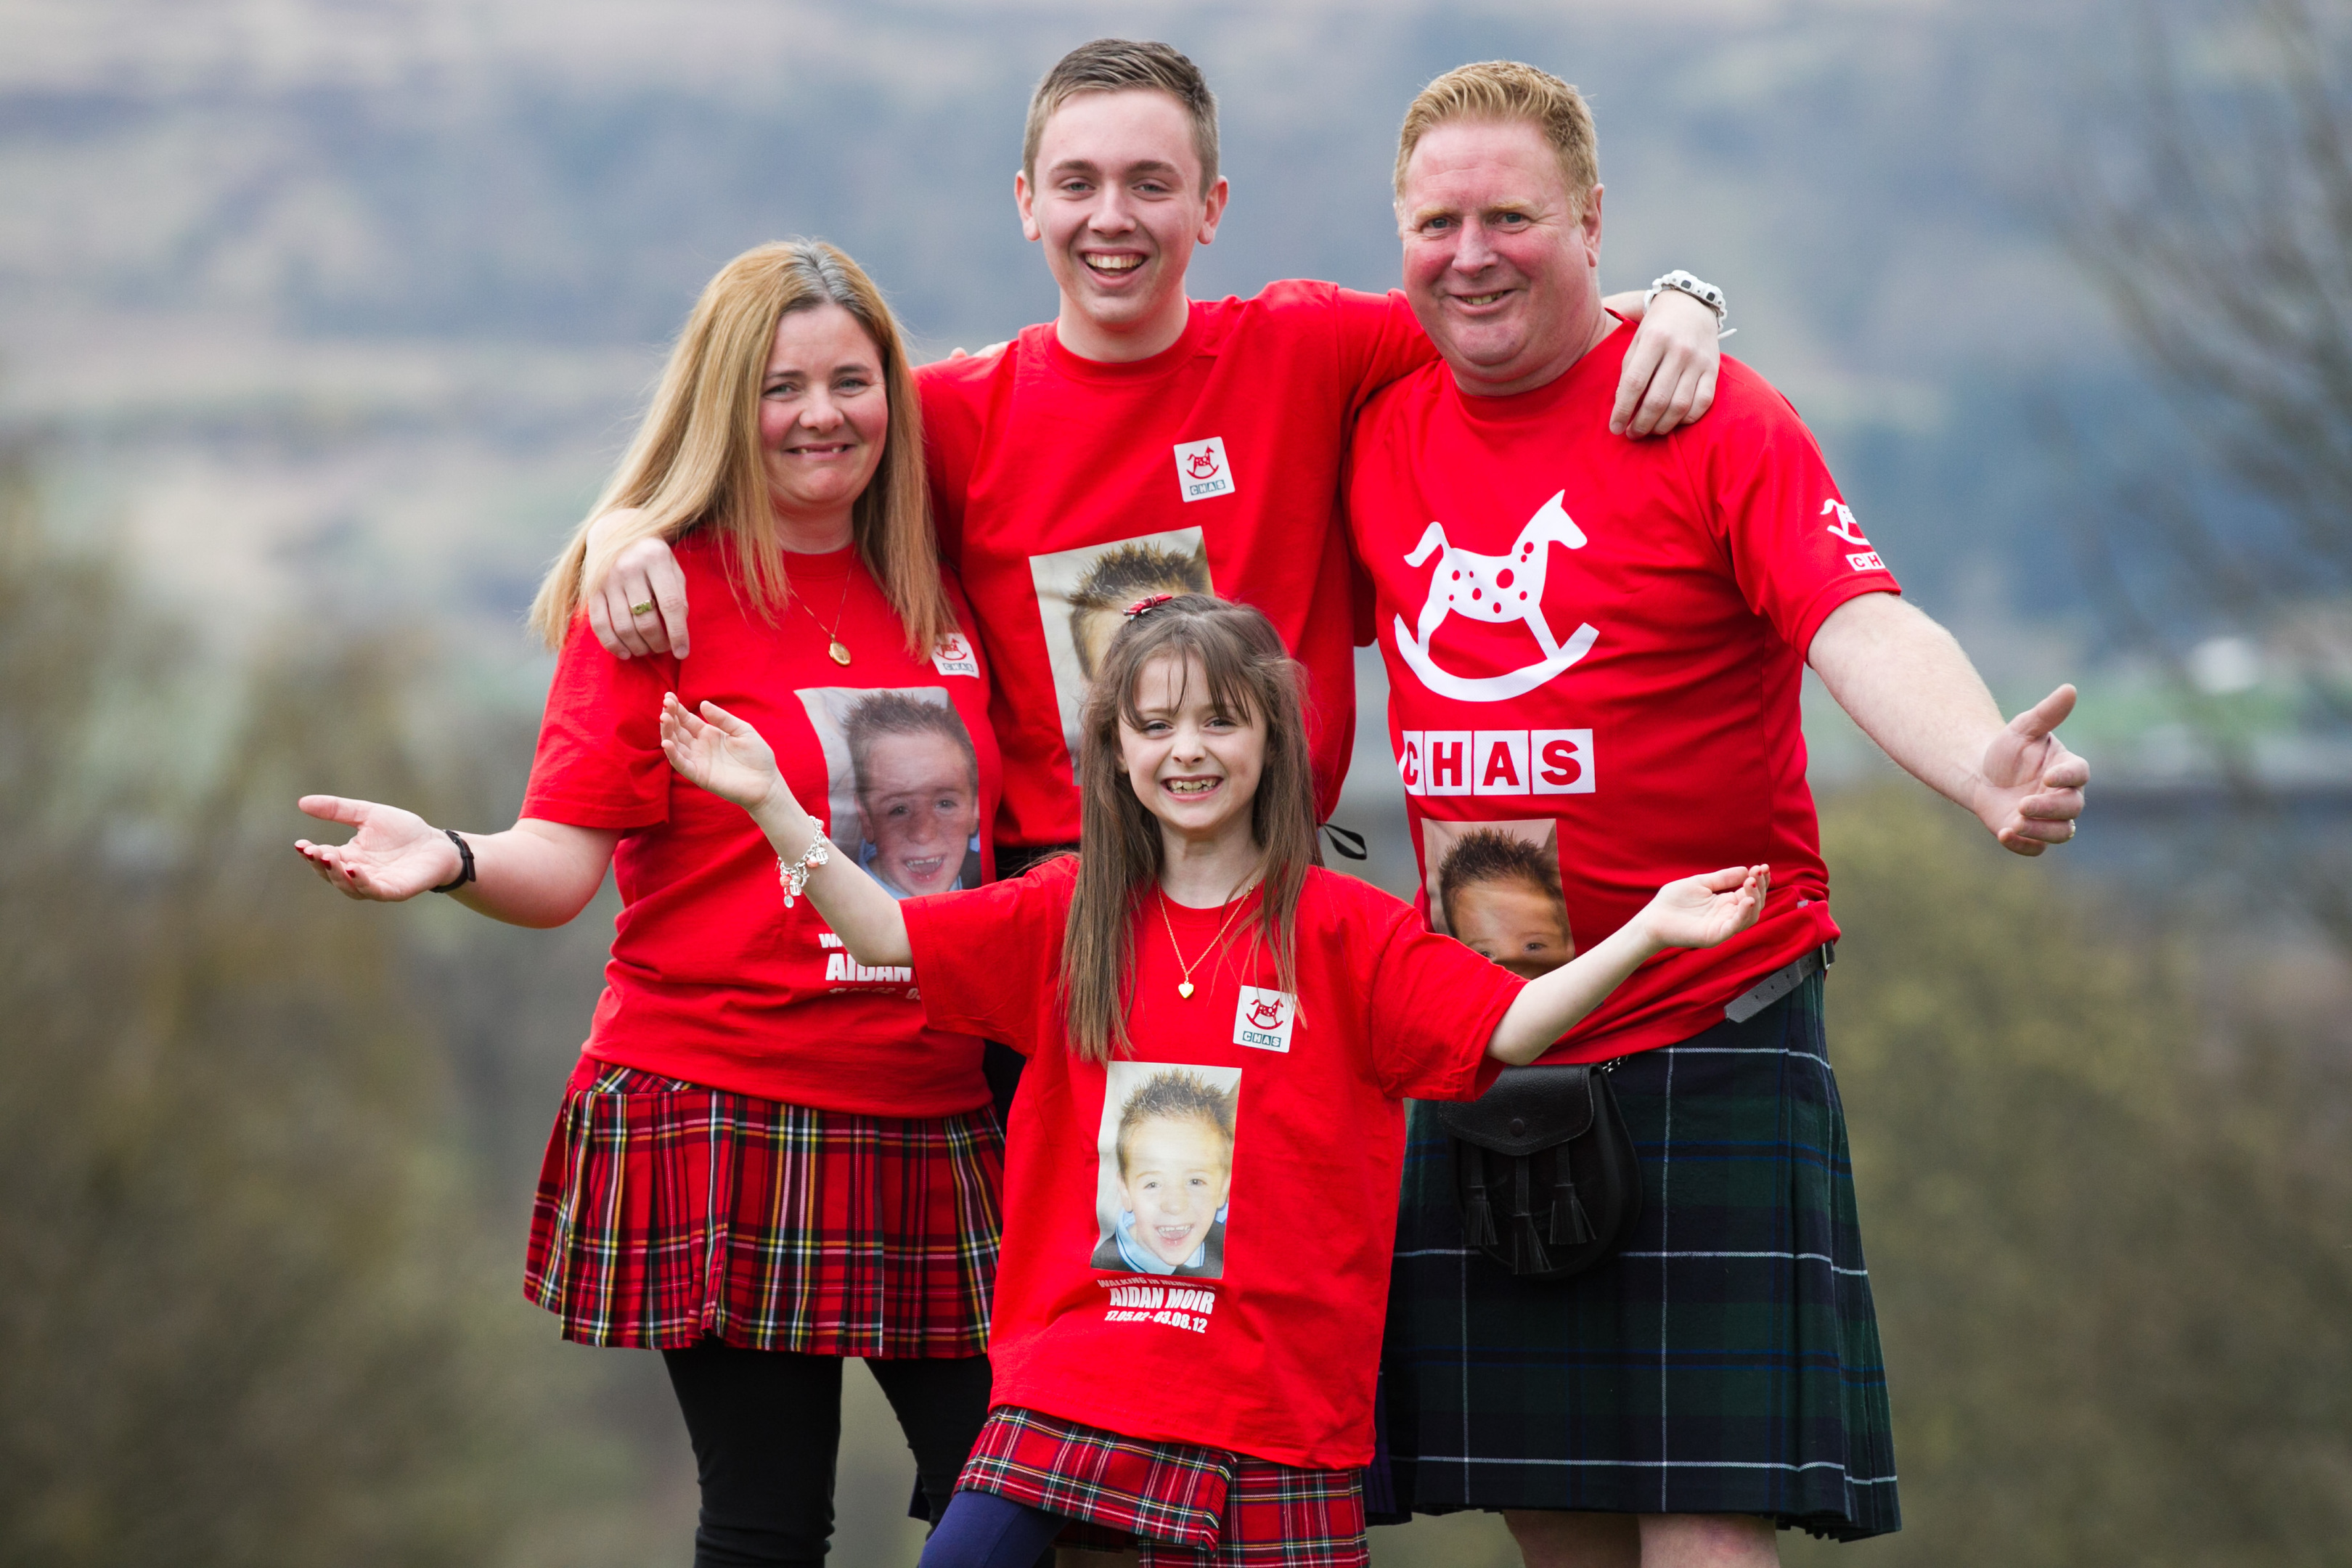 Claire Moir, husband Paul, and children Rebekah, and Connor (Andrew Cawley / DC Thomson)